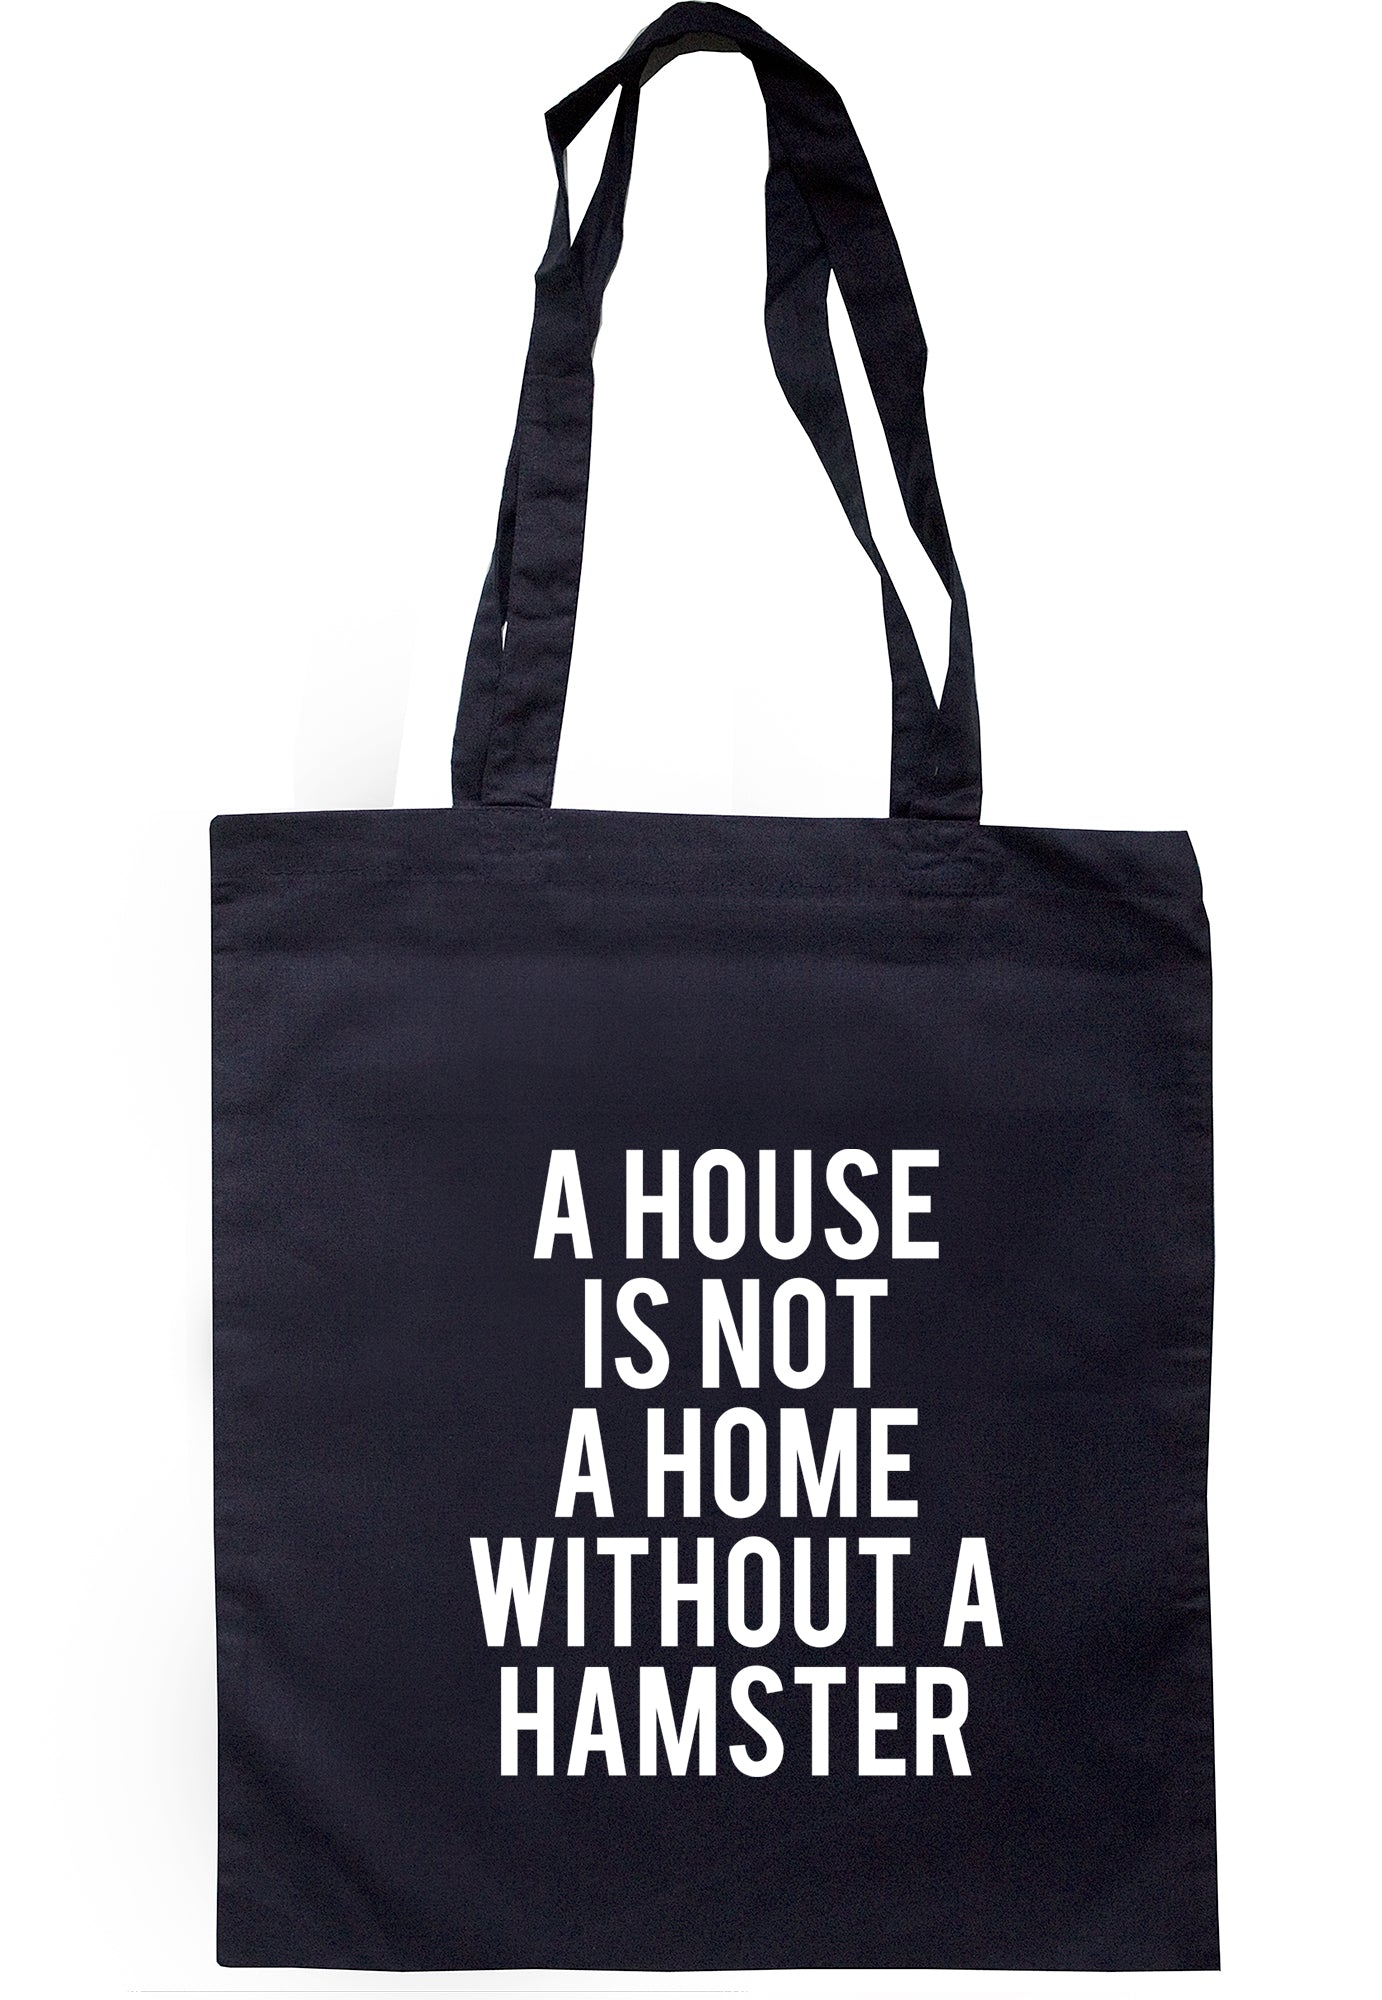 A House Is Not A Home Without A Hamster Tote Bag TB1656 - Illustrated Identity Ltd.